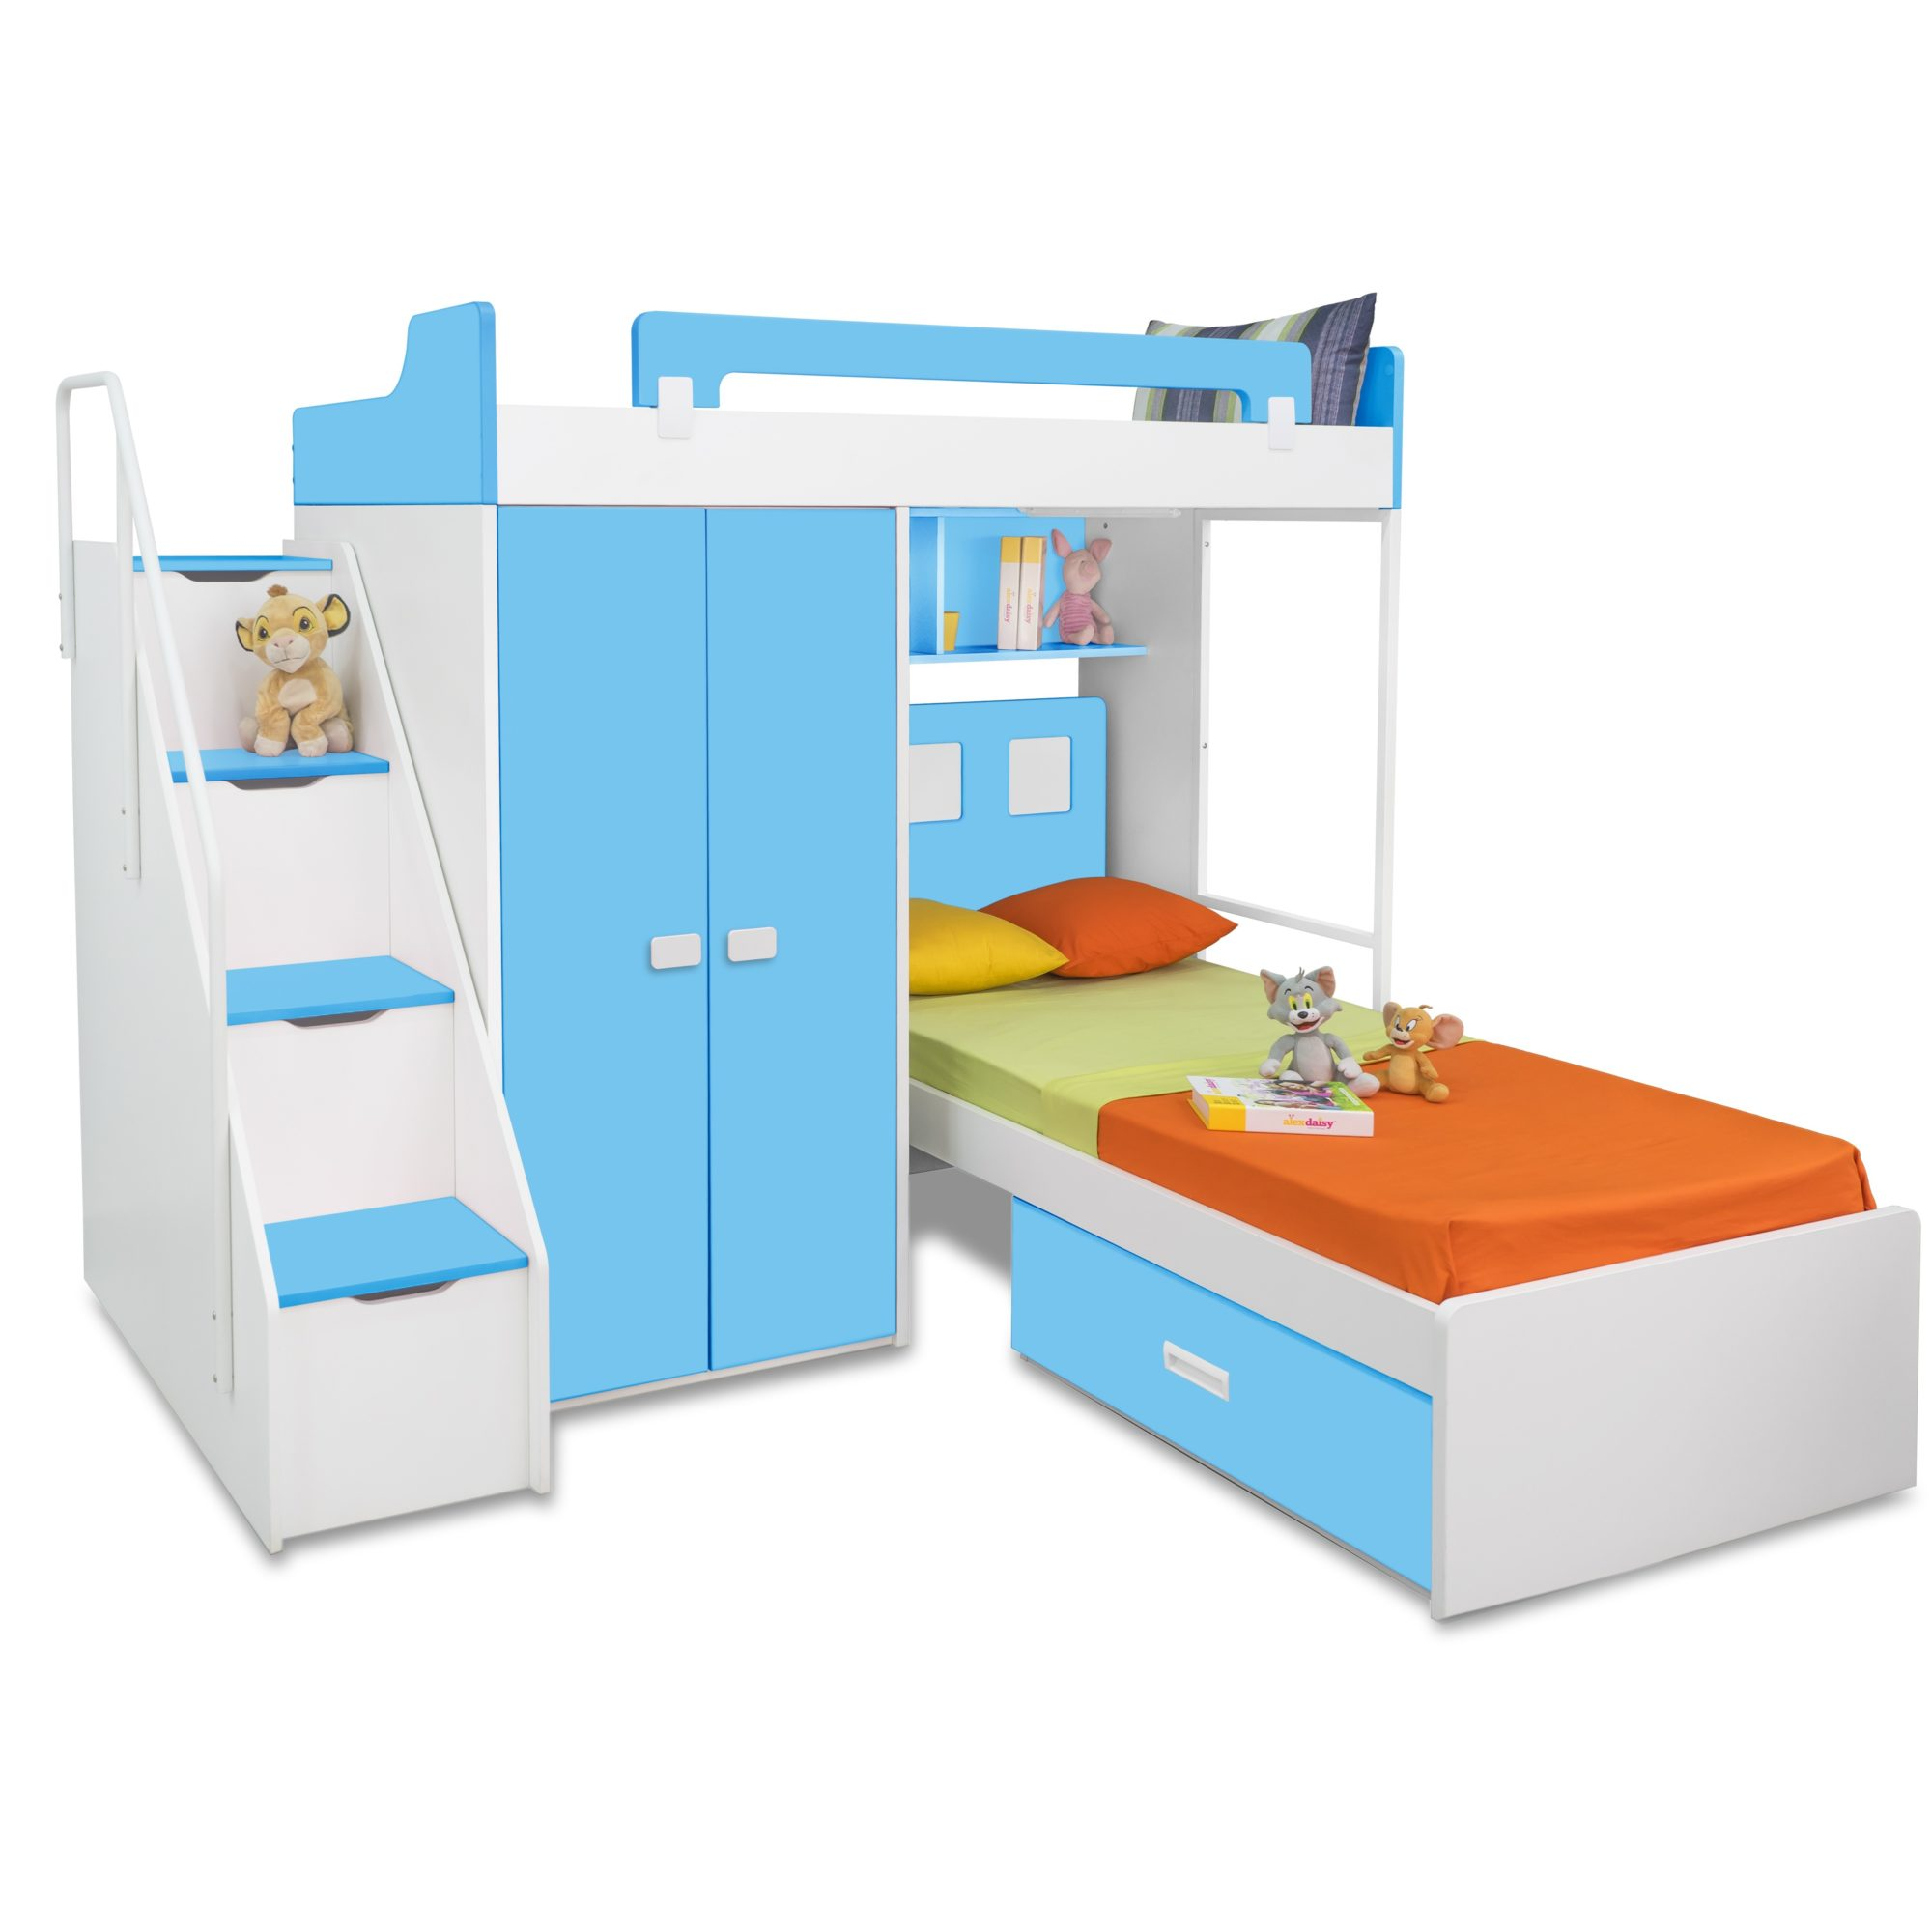 cool lshaped bunk beds for boys  buy lshaped bunk beds online - the pros of lshaped bunk beds